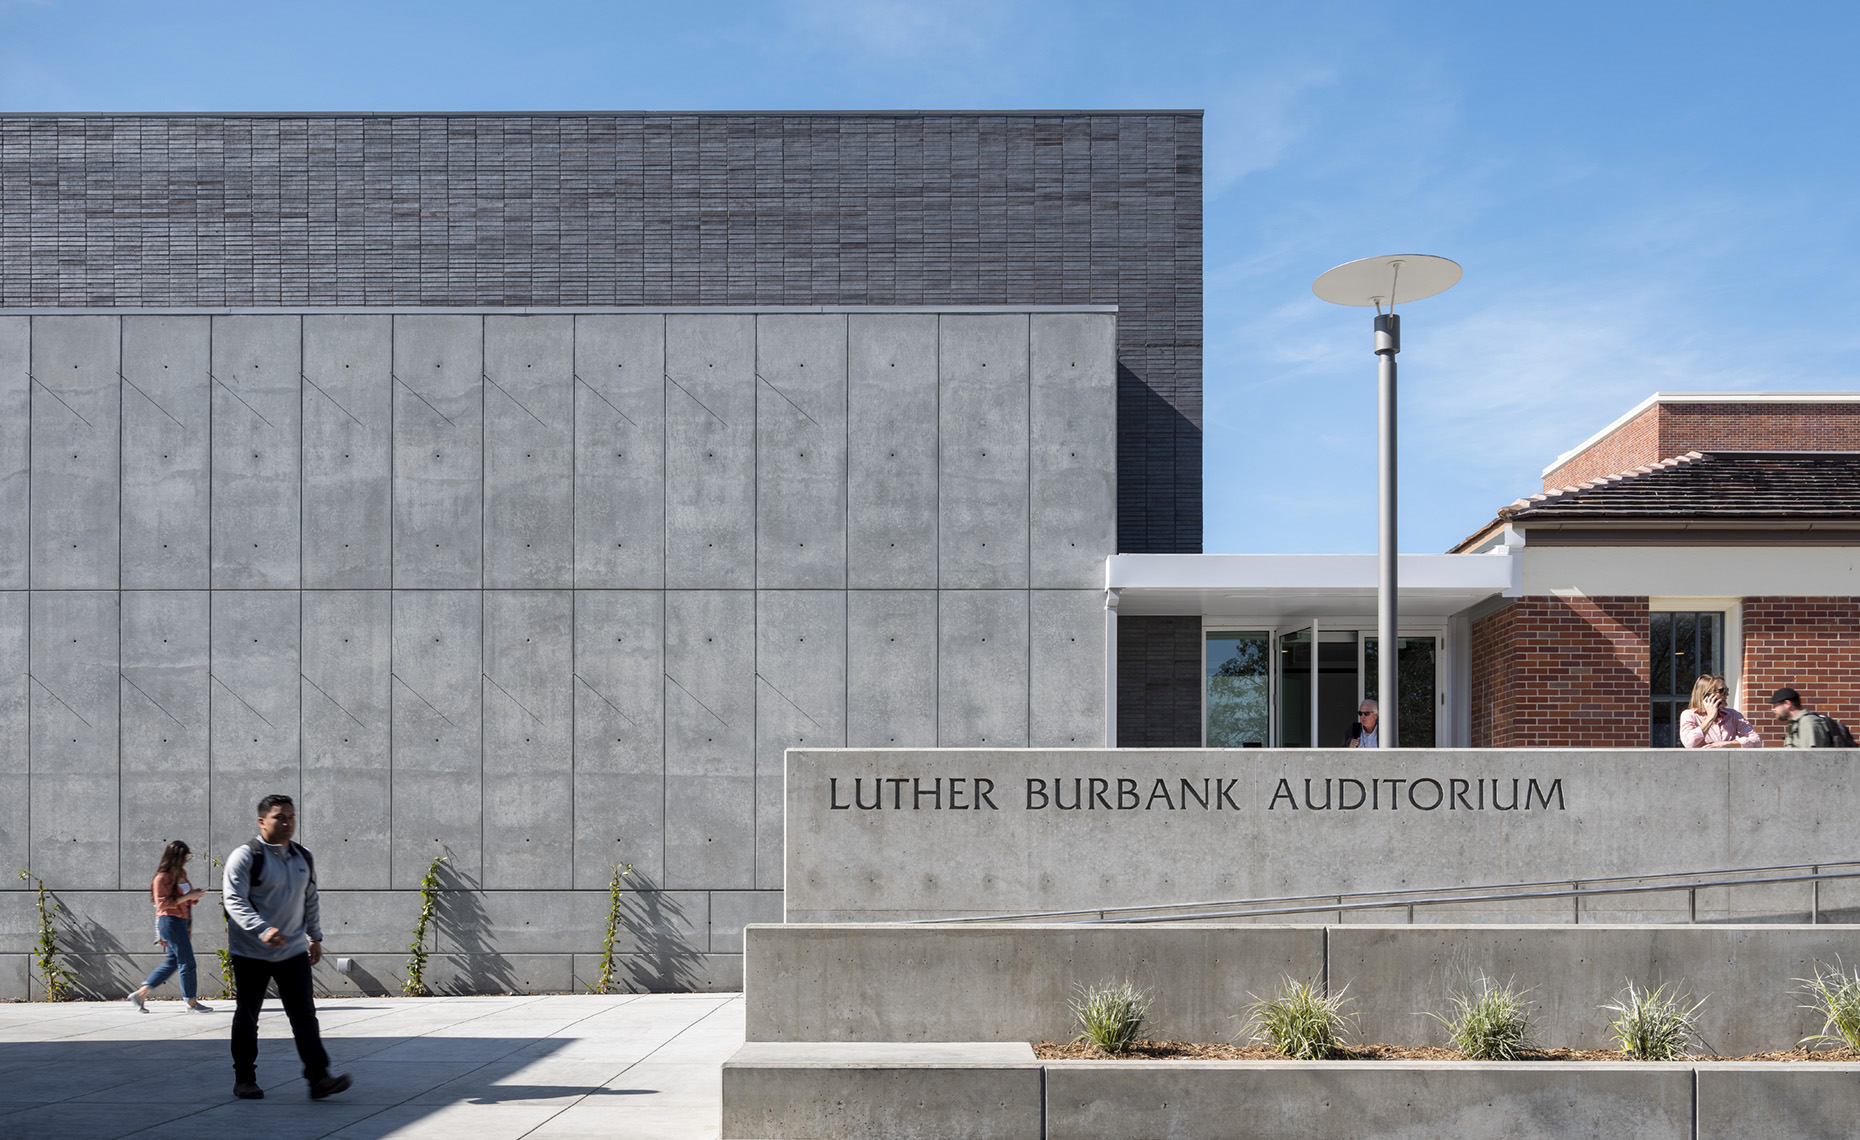 BURBANK AUDITORIUM, SANTA ROSA JUNIOR COLLEGE